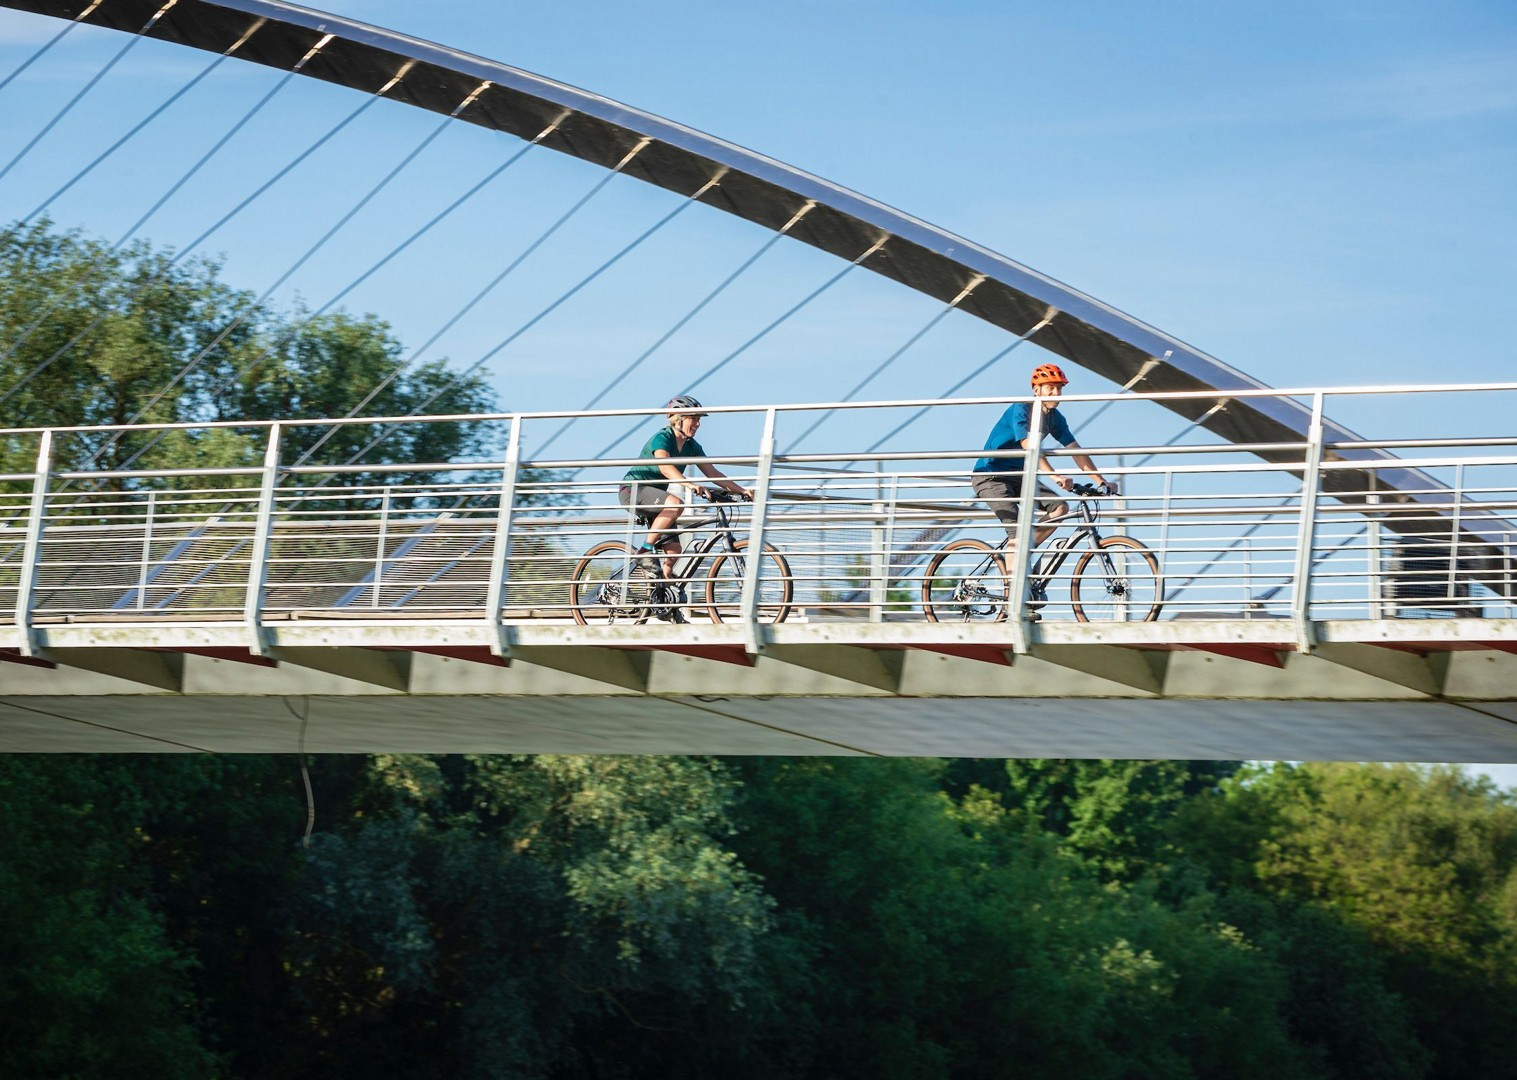 cycle-paths-of-yorkshire-bridges-leisure-bike.jpg - UK - Way of the Roses 5 Days Cycling - Self-Guided Leisure Cycling Holiday - Leisure Cycling